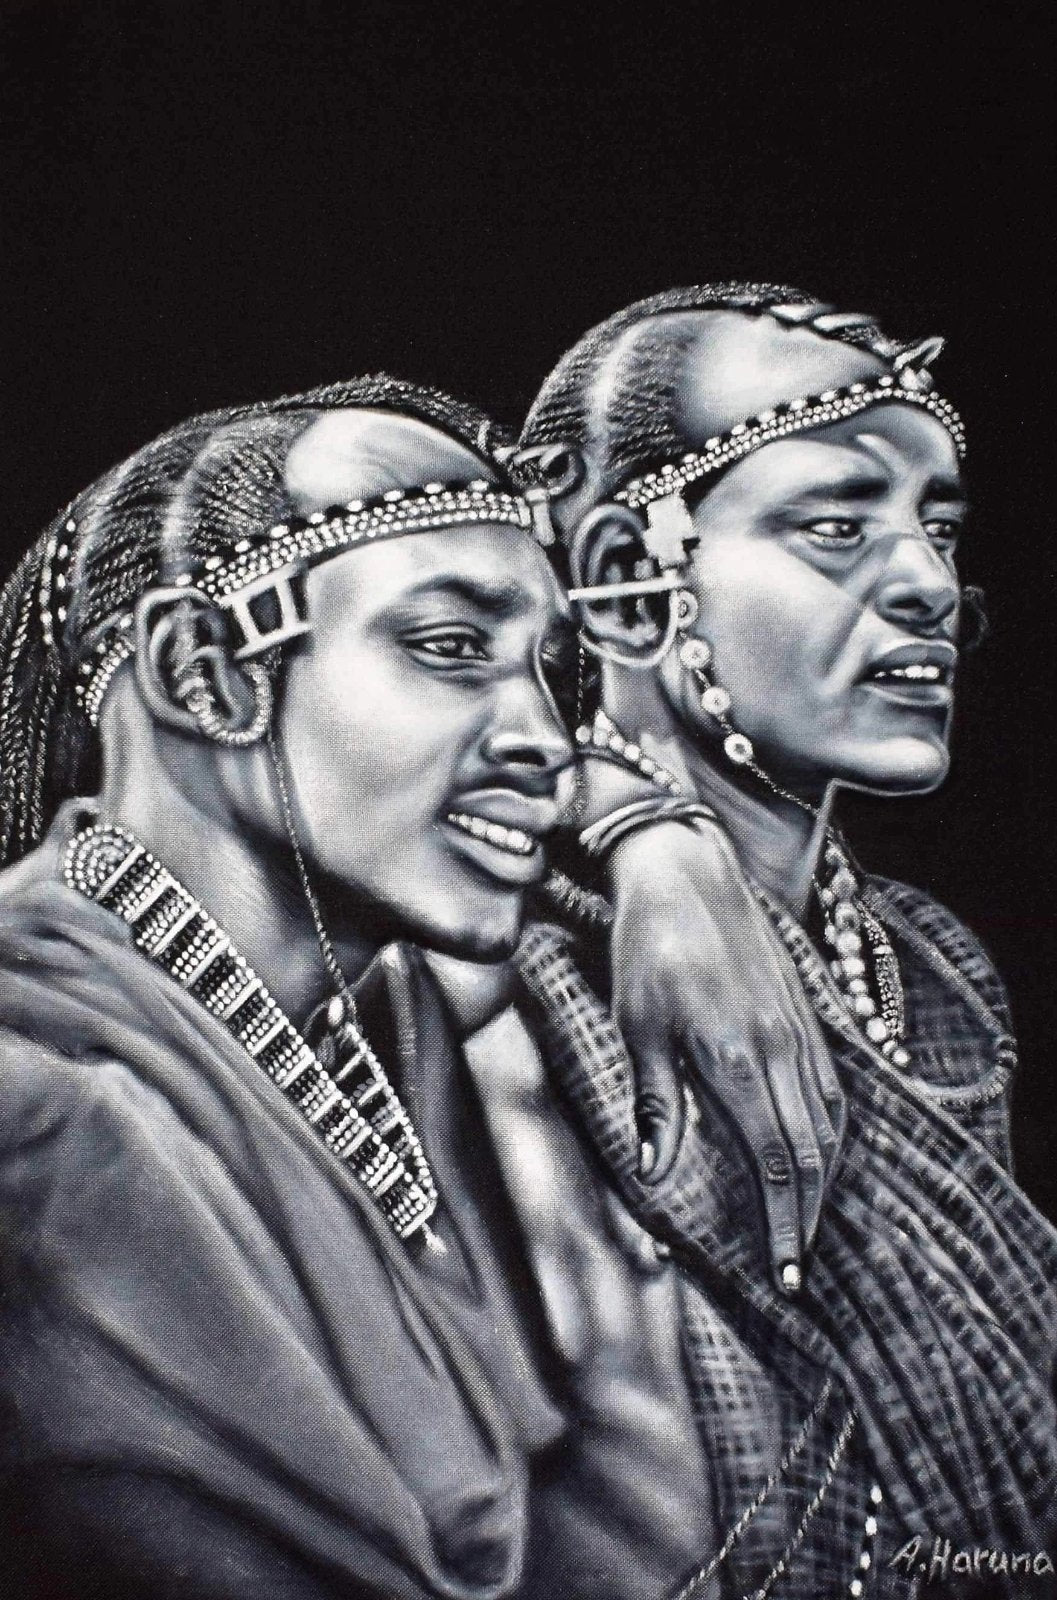 AFRICAN PAINTING OF MEN